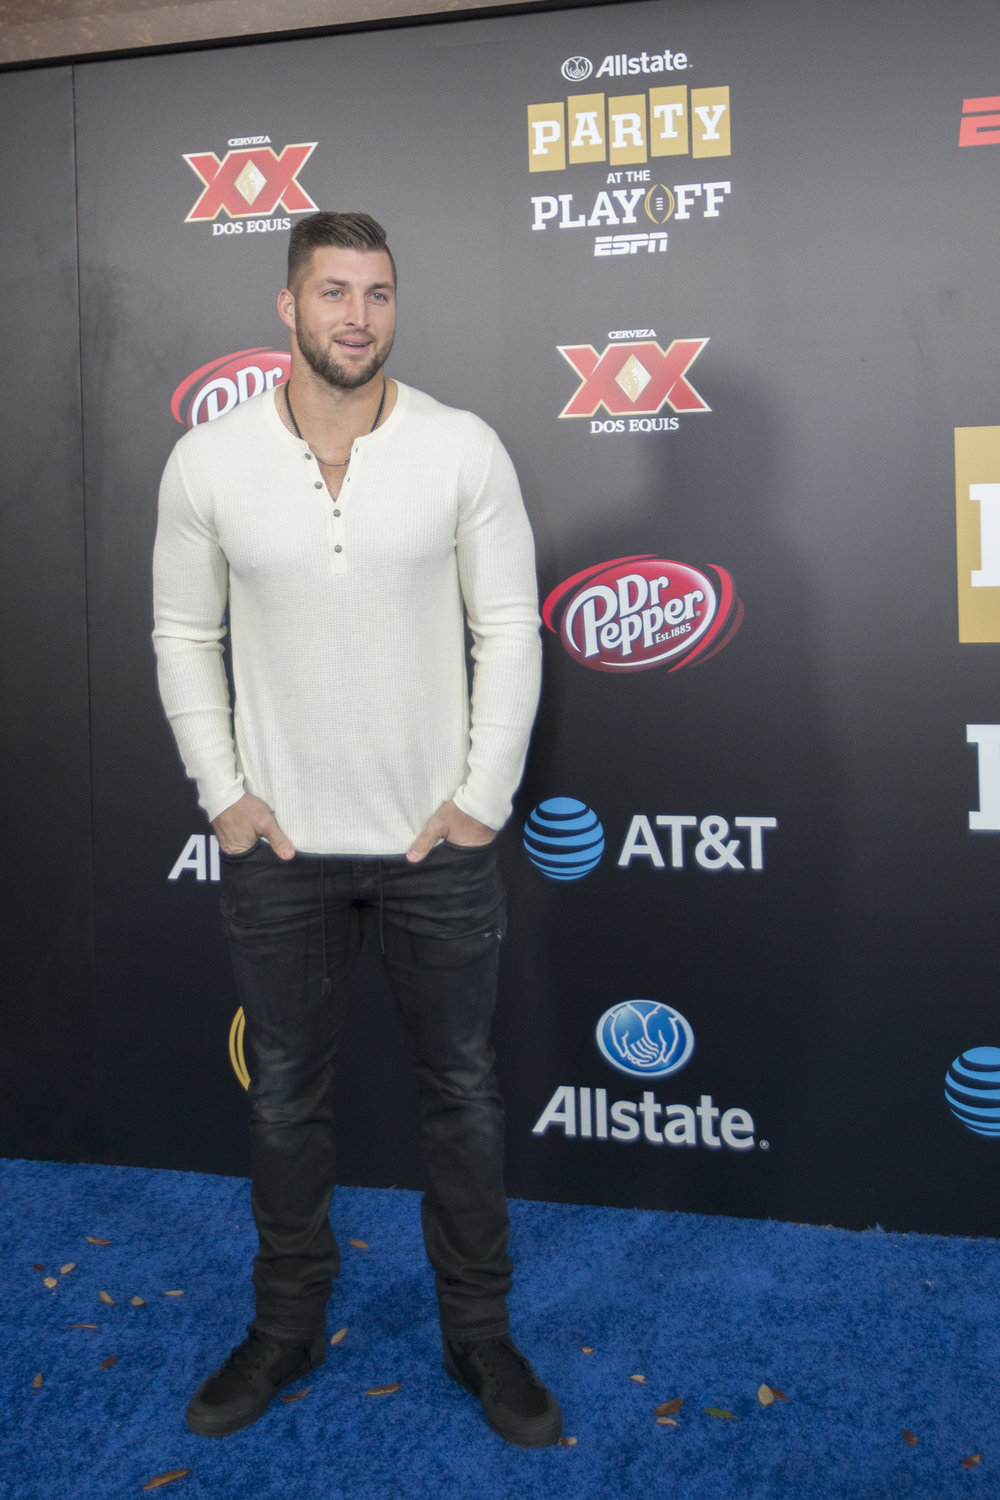 Tim Tebow, former professional American football player poses on the carpet.jpg